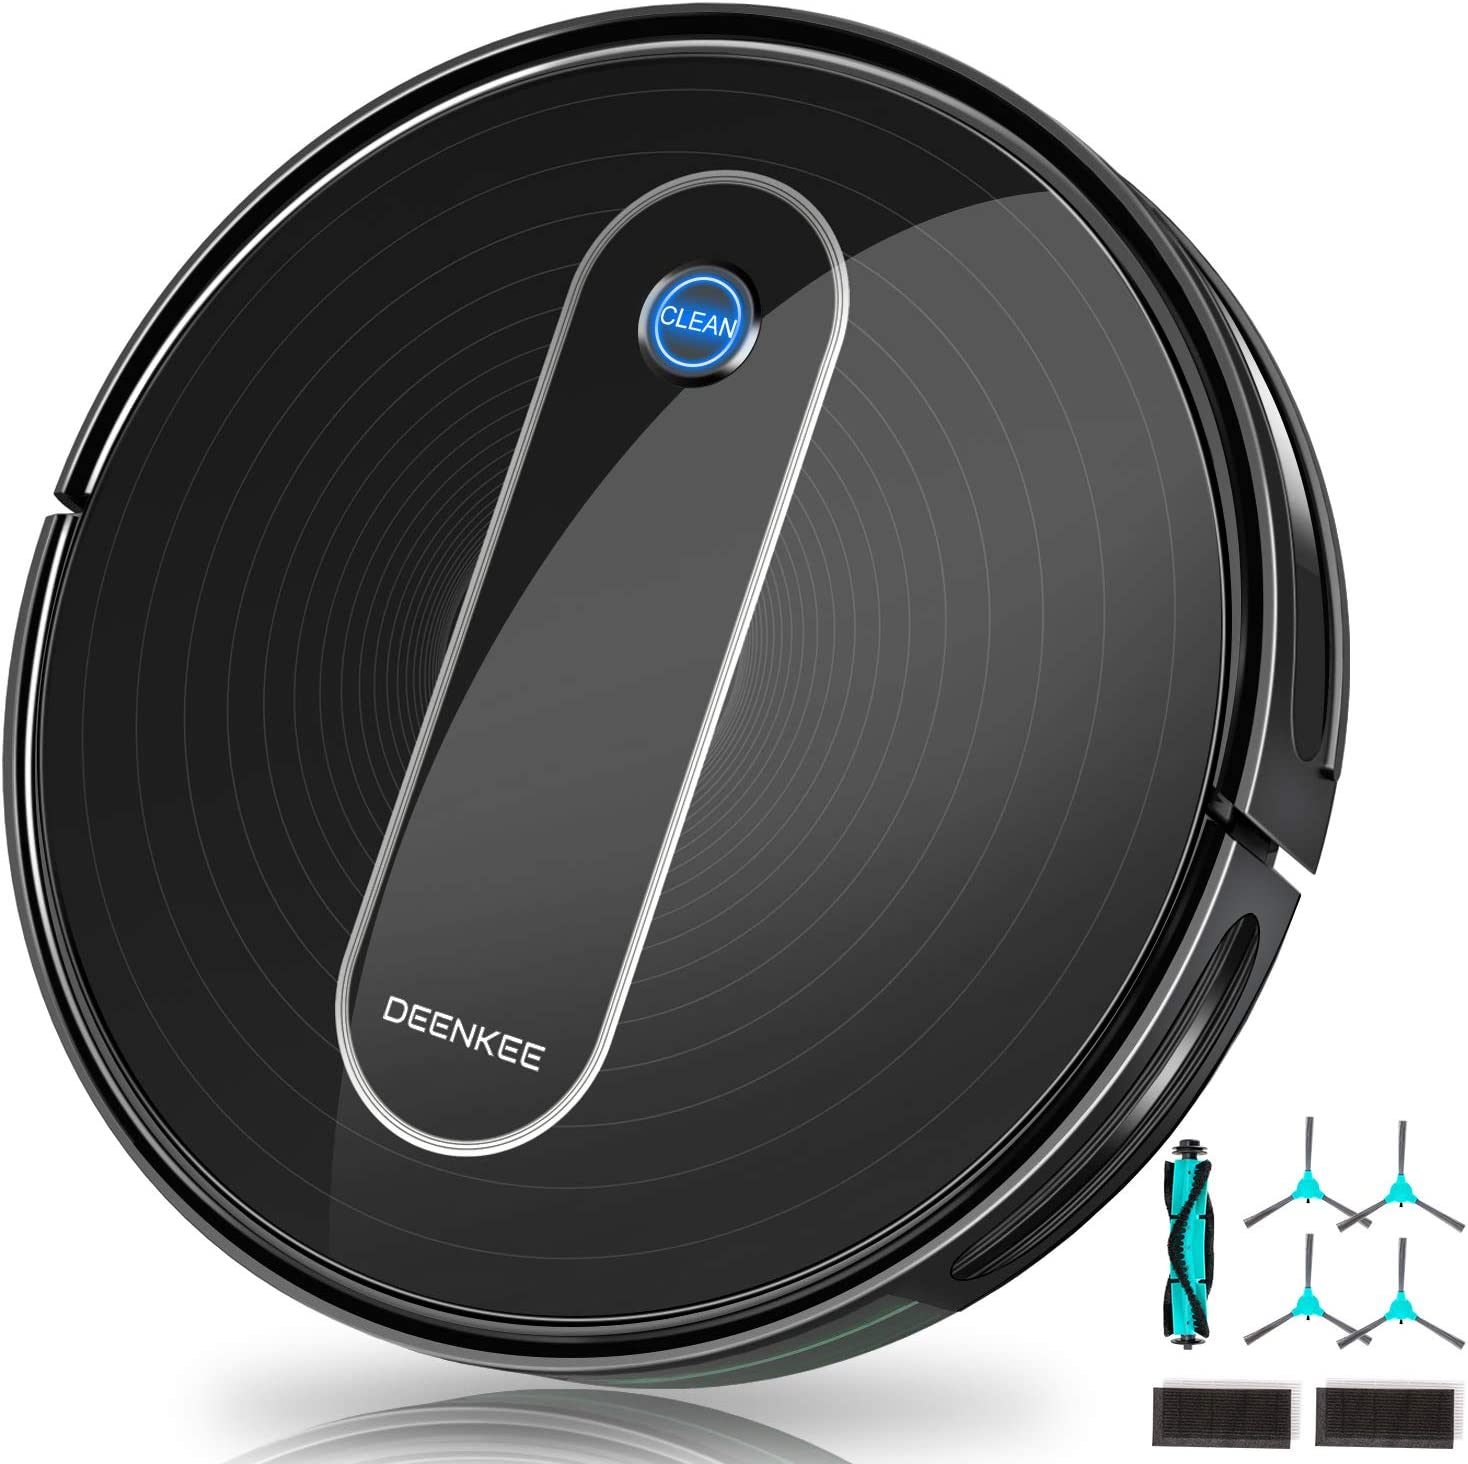 """Robot Vacuum, DEENKEE DK600 Robotic Vacuum Cleaner 1600Pa Strong Suction, Self-Charging, 2.75"""" Slim, Quiet, 100Min Runtime, 6 Cleaning Modes, Ideal for Pet Hair, Hard Floors, Carpets"""